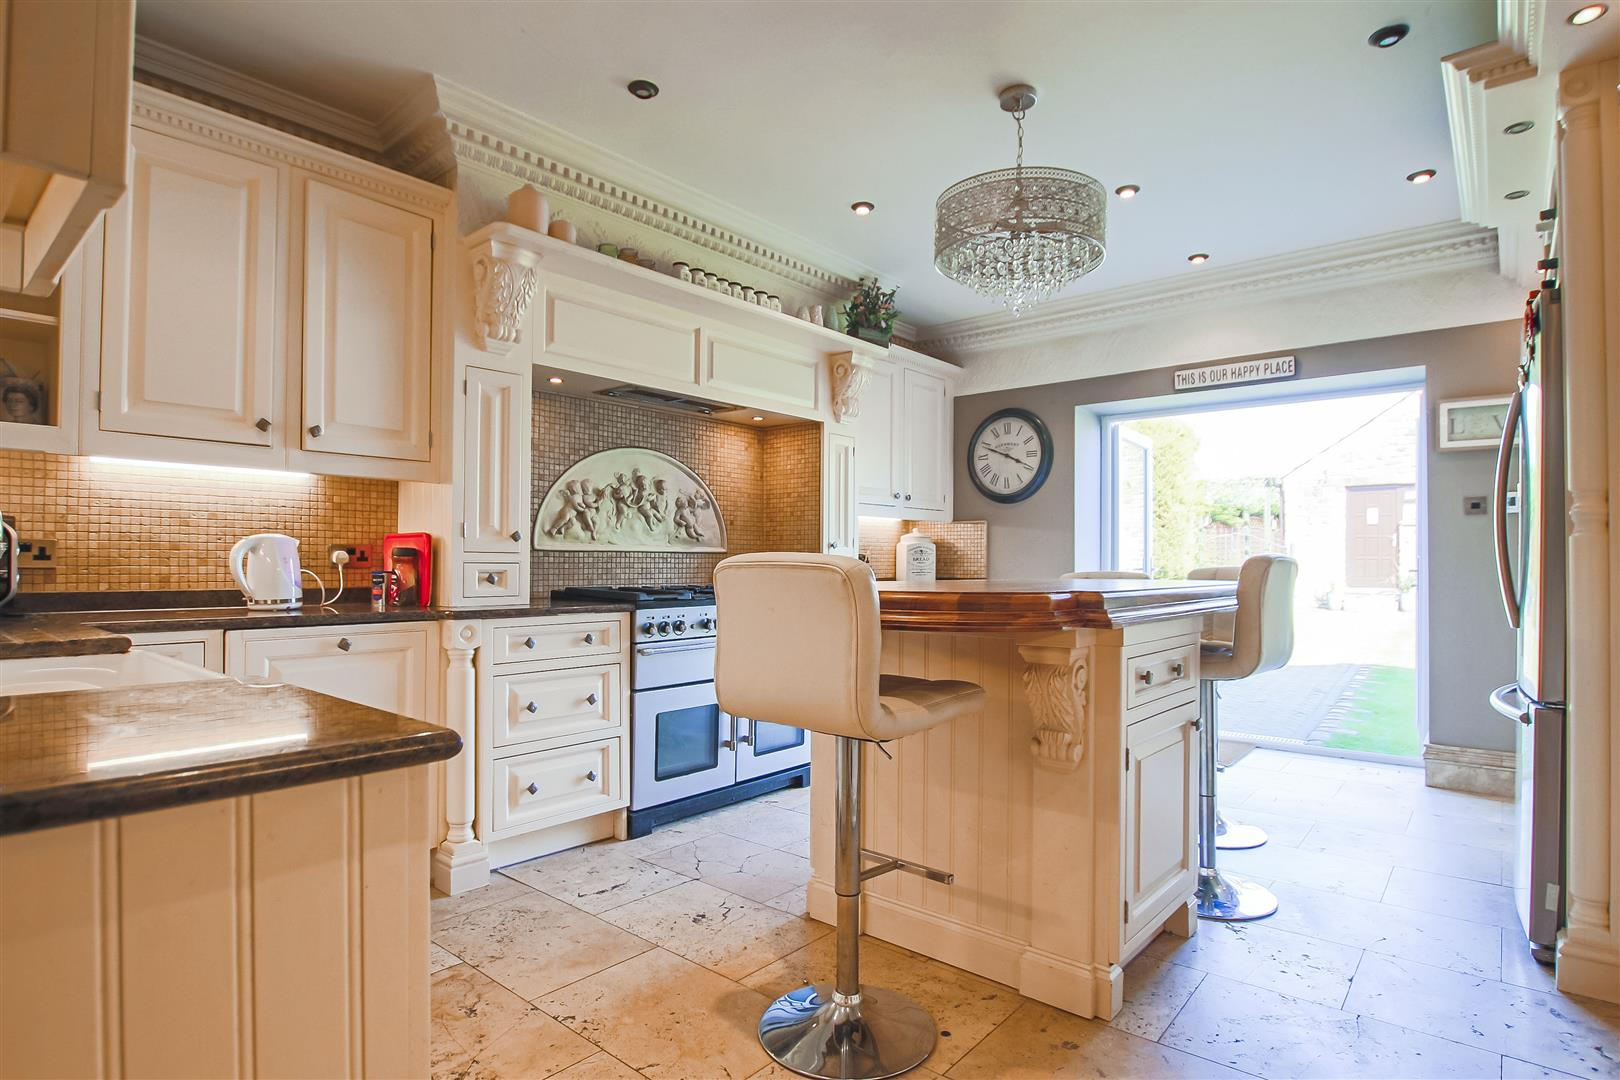 4 Bedroom Barn Conversion For Sale - Image 28